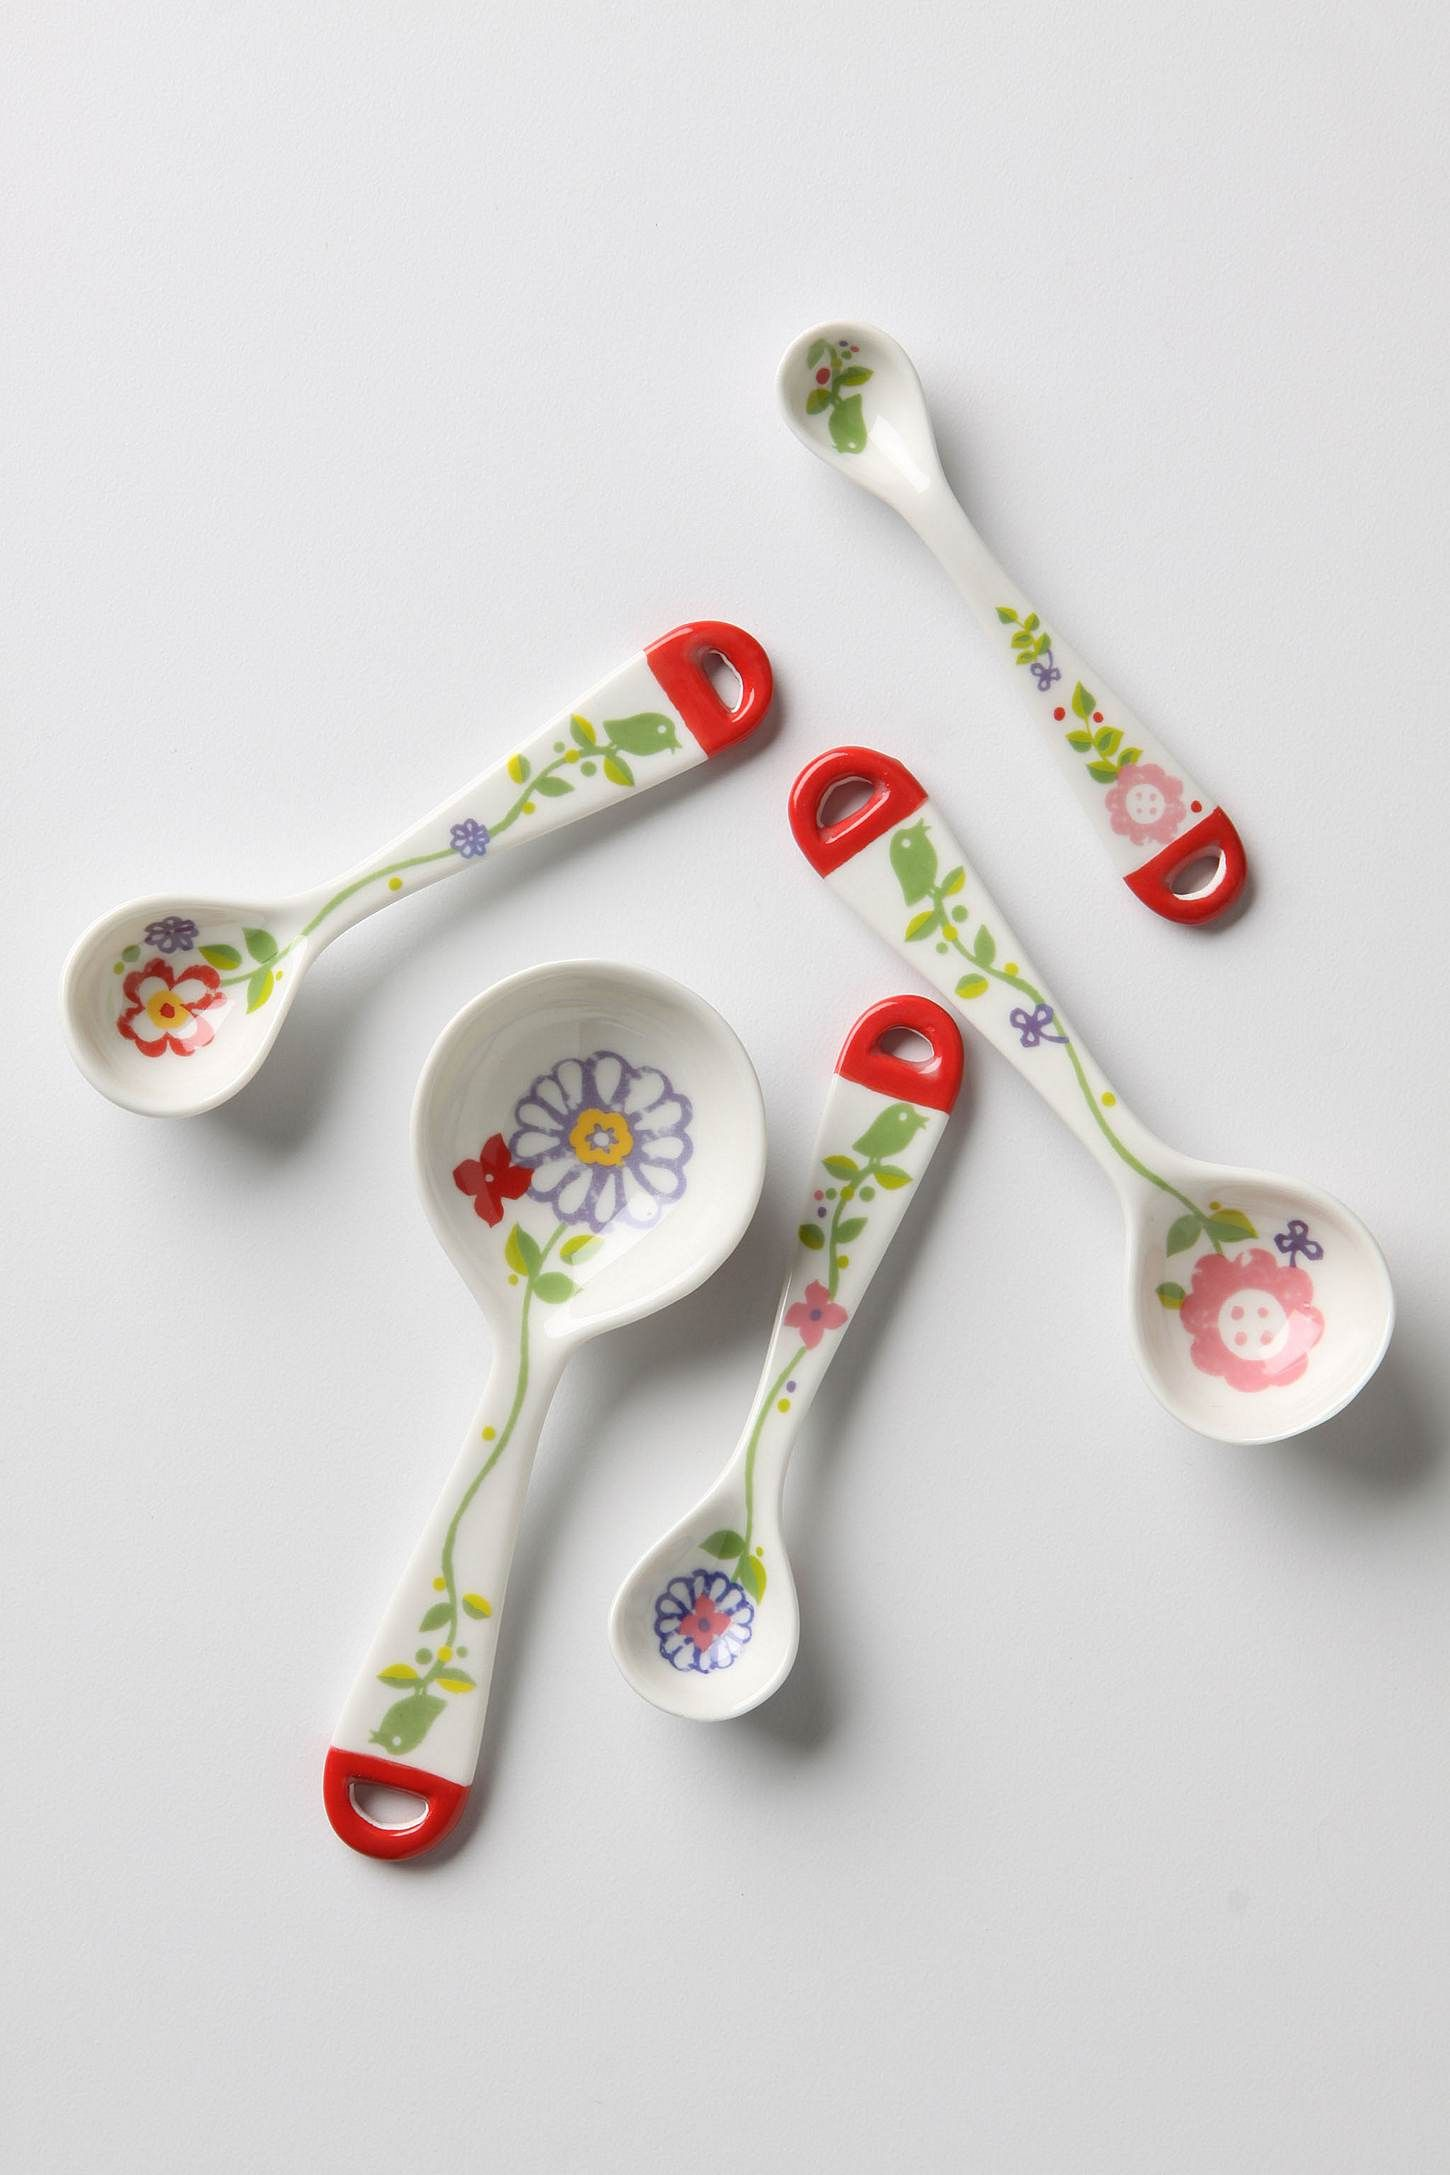 I Am Obsessed With Measuring Spoons And Cups Measuring Spoons Spoon Ceramic Spoons